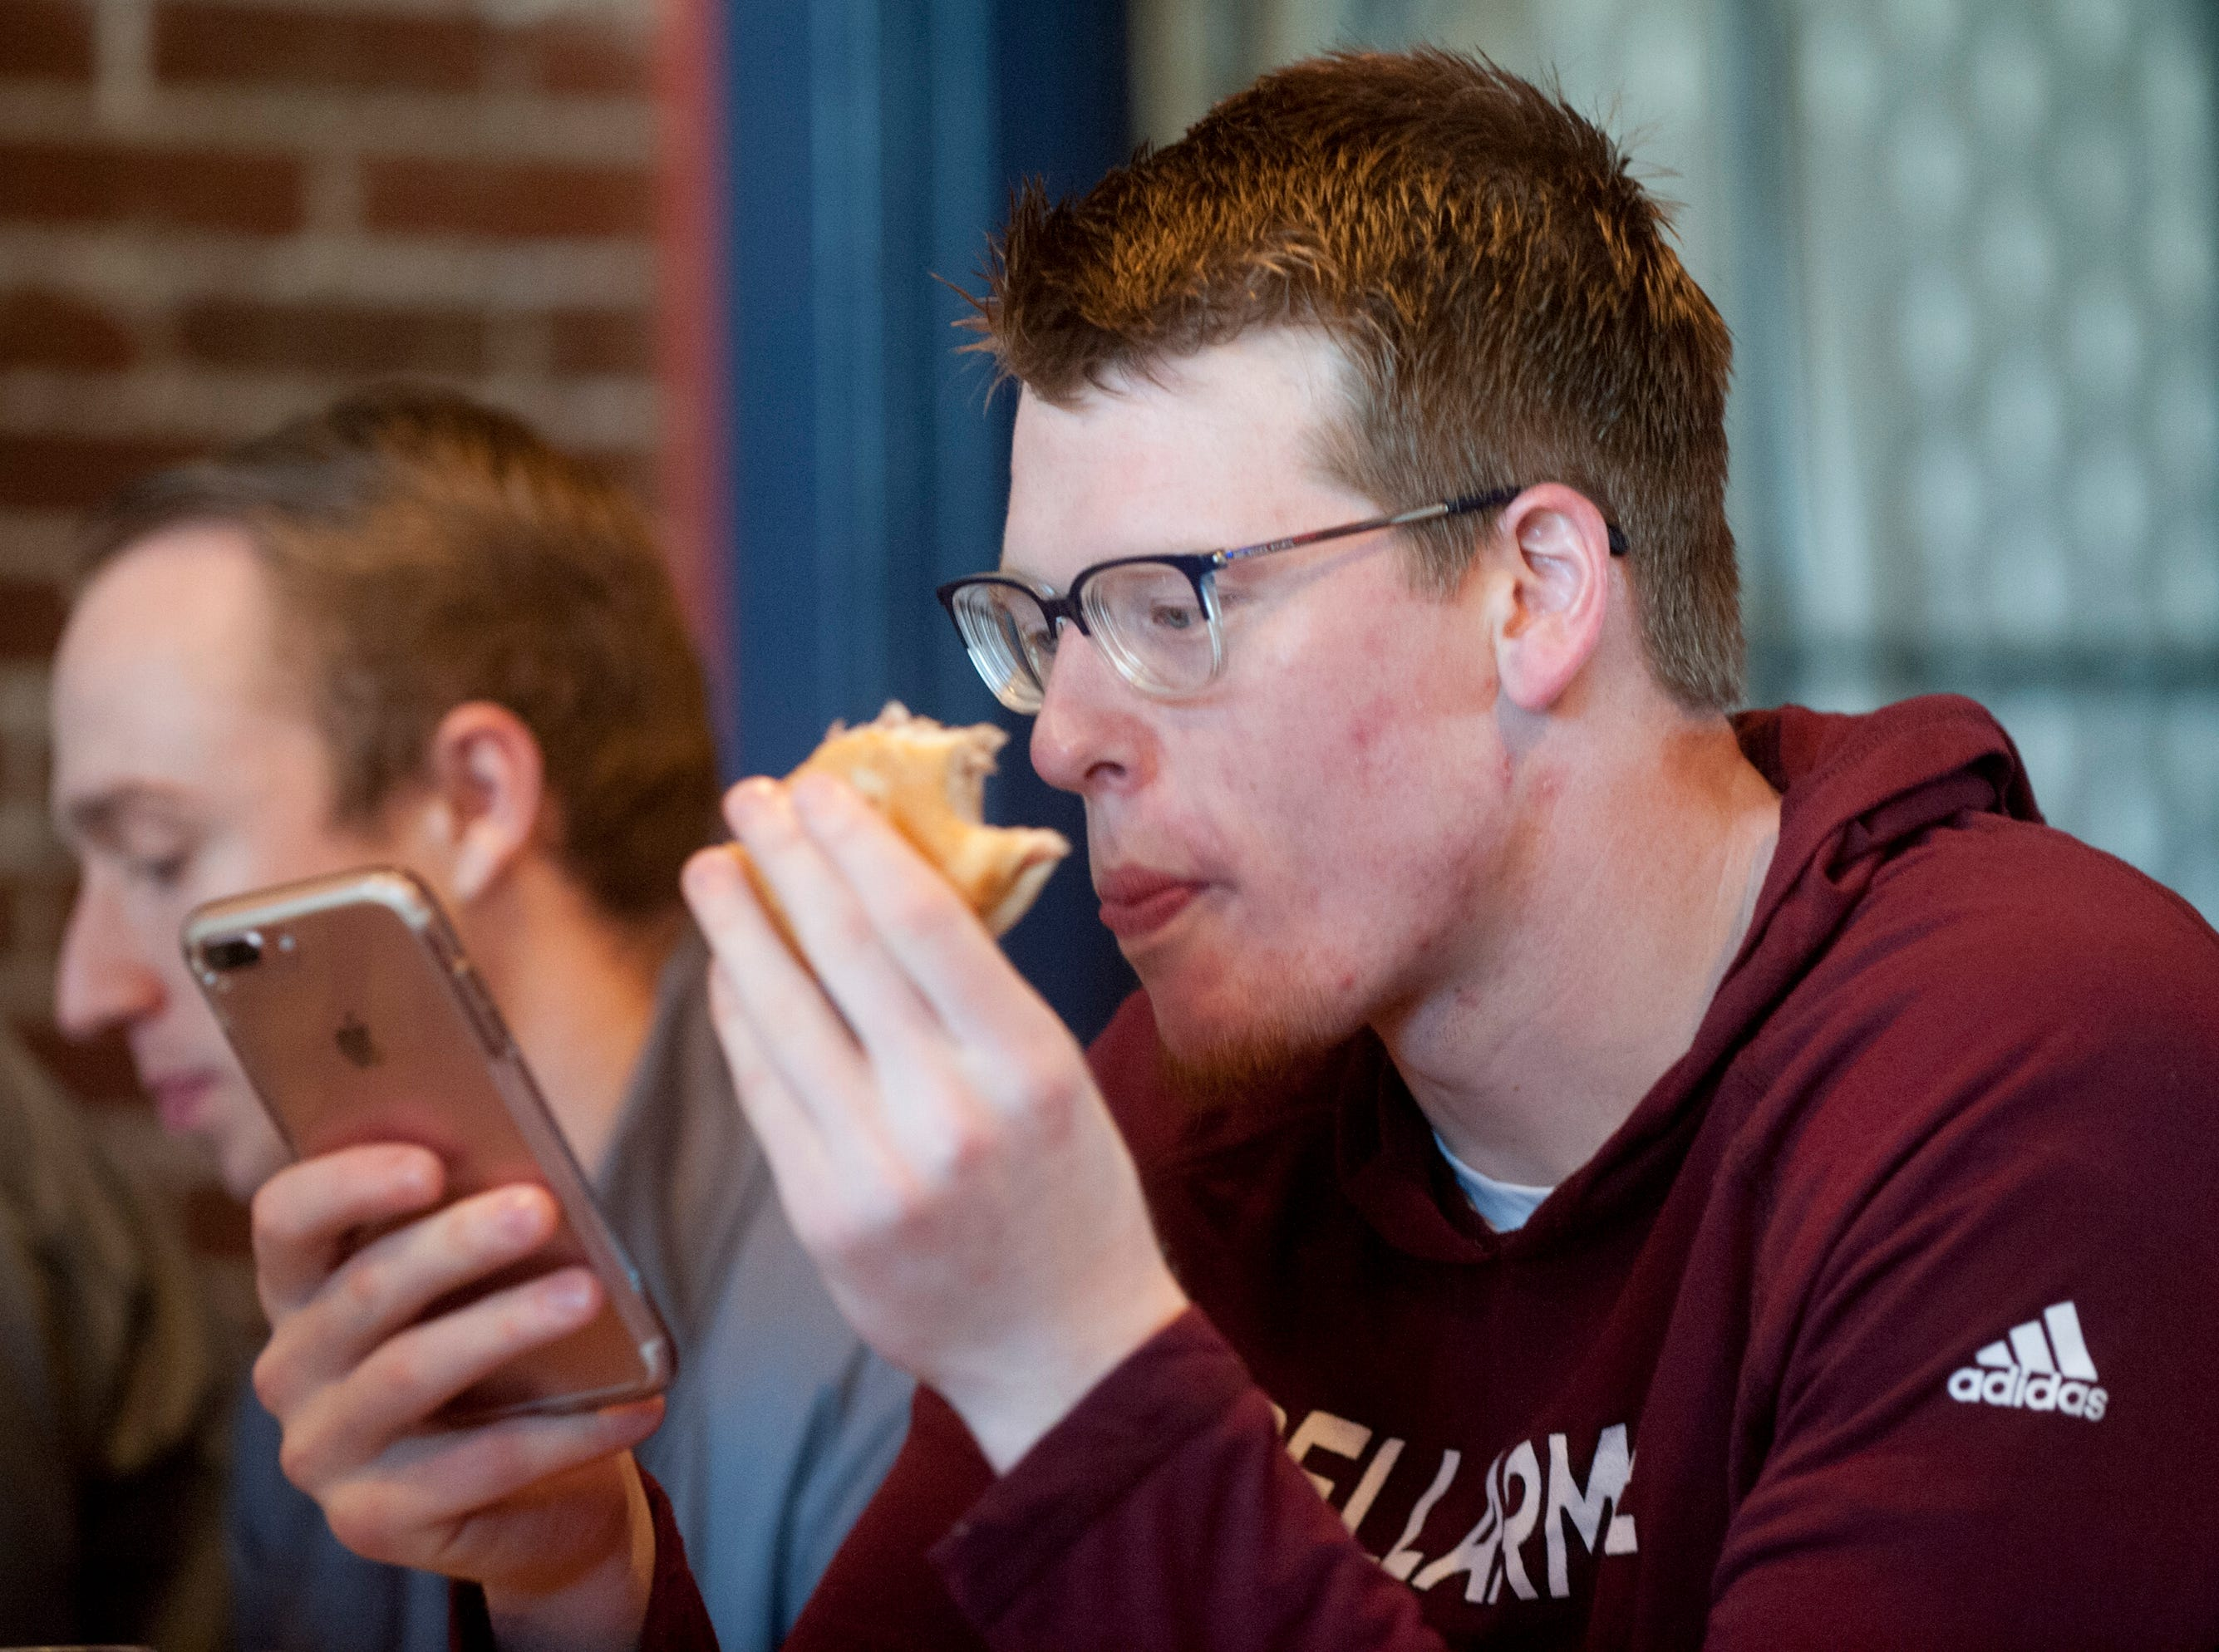 During the team's afternoon meal together, Bellarmine guard Garrett Tipton spent his time equally divided by eating and twittering on his cell phone.14December 2018